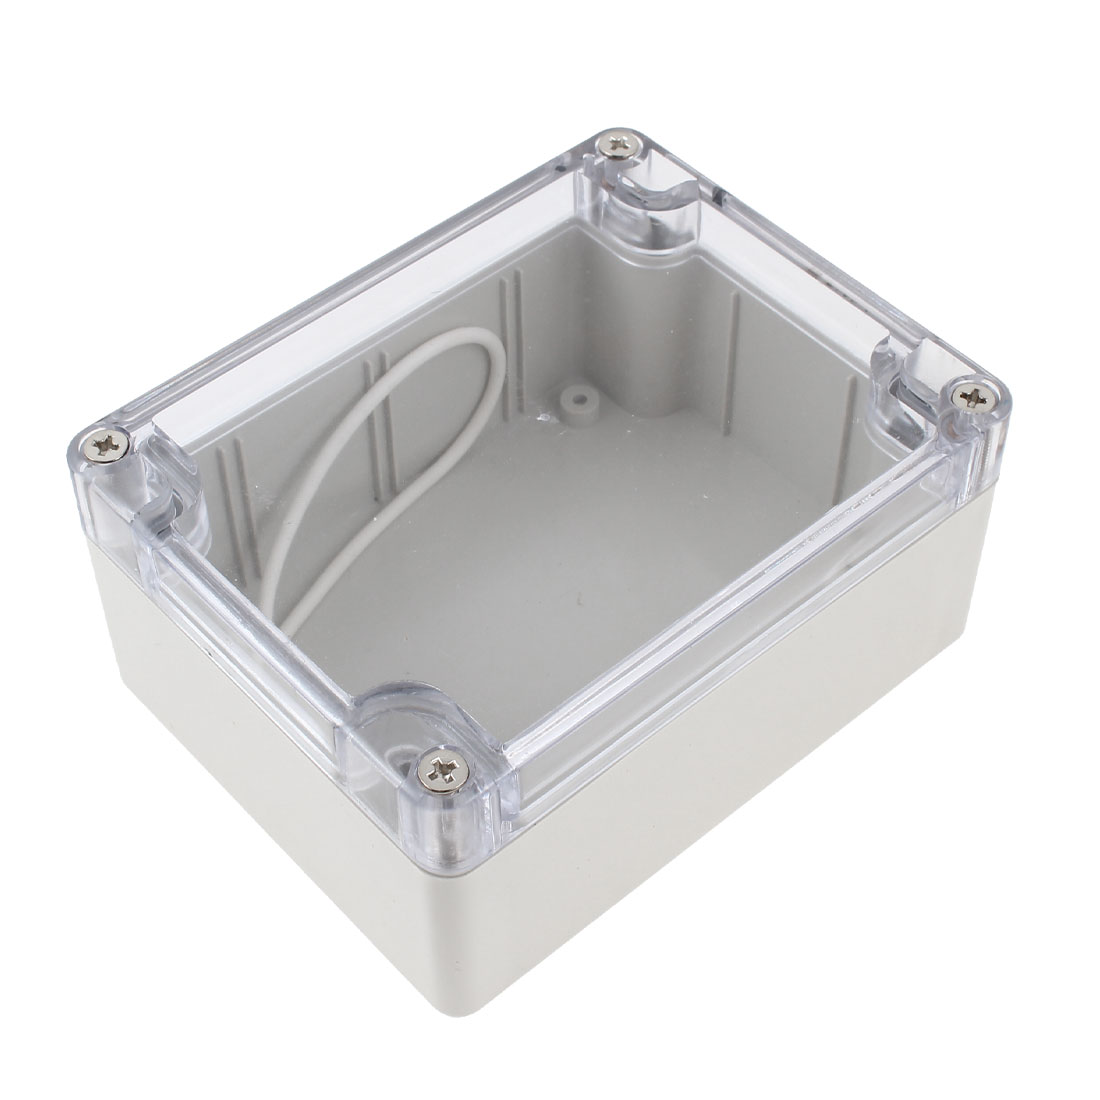 Clear Waterproof Cable Connect Electric Switch Junction Box 108 x 85 x 52mm